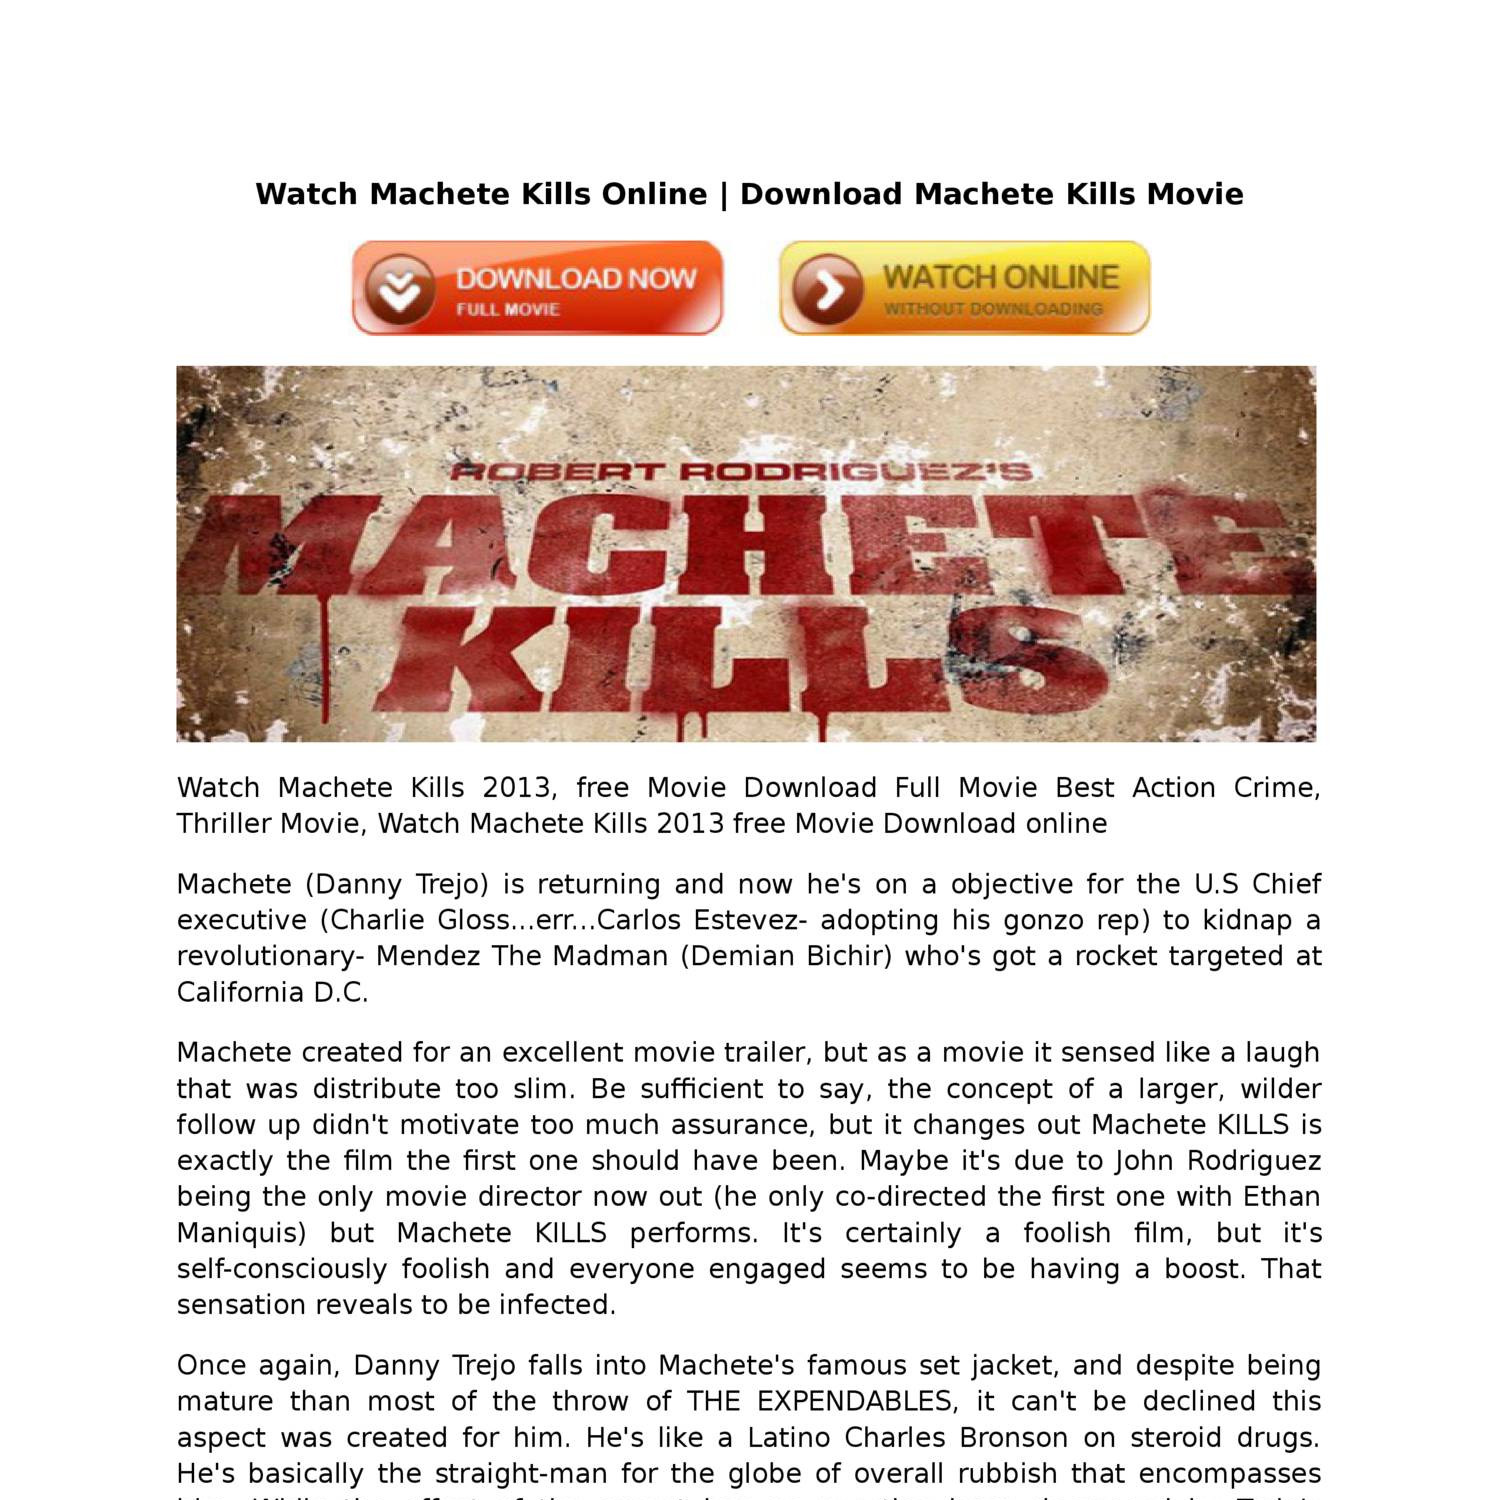 Revenge & watch machete kills online movie free full undercover.